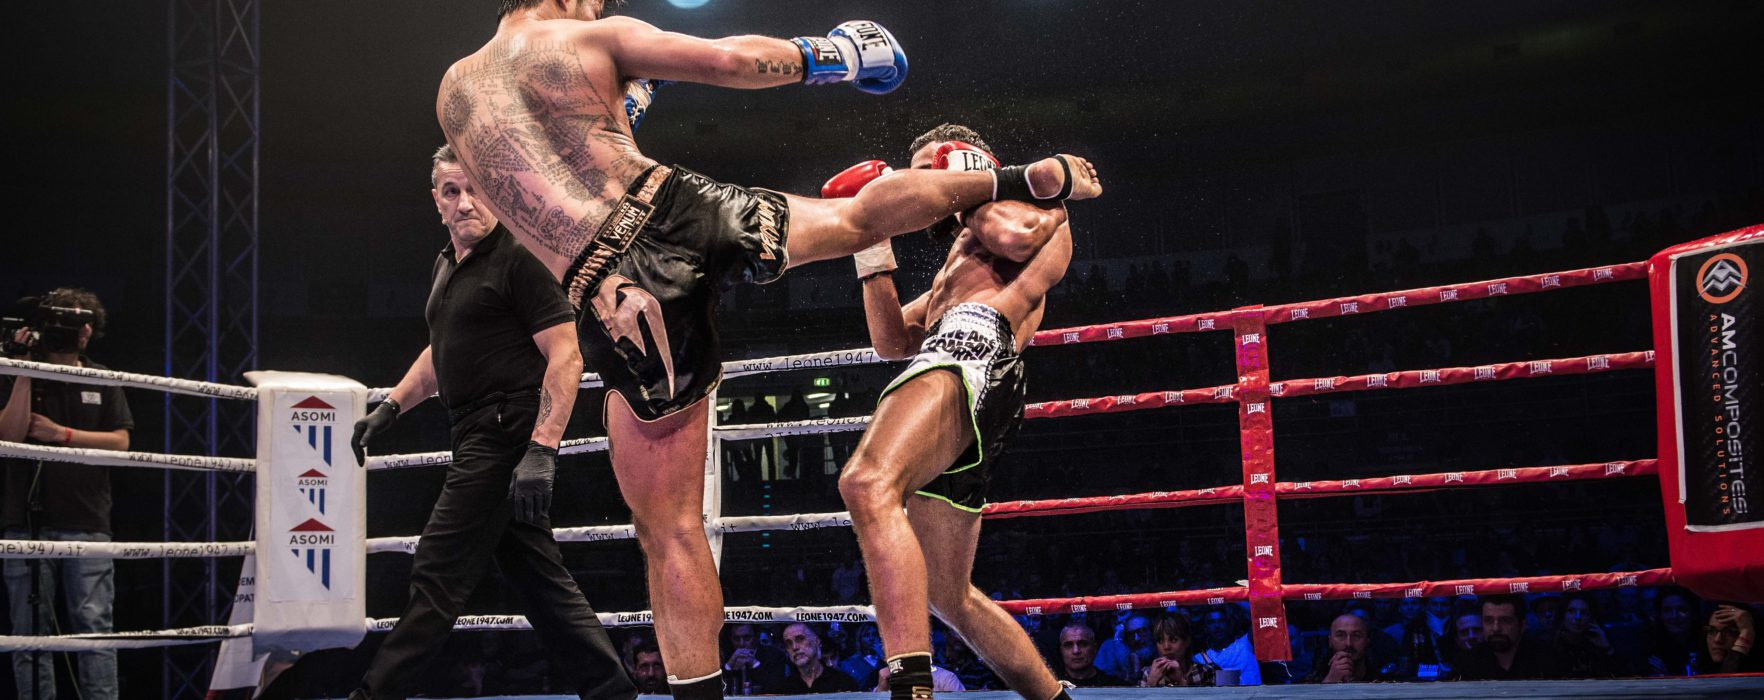 (English) Results of Thai Boxe Mania 2018 (Italy)